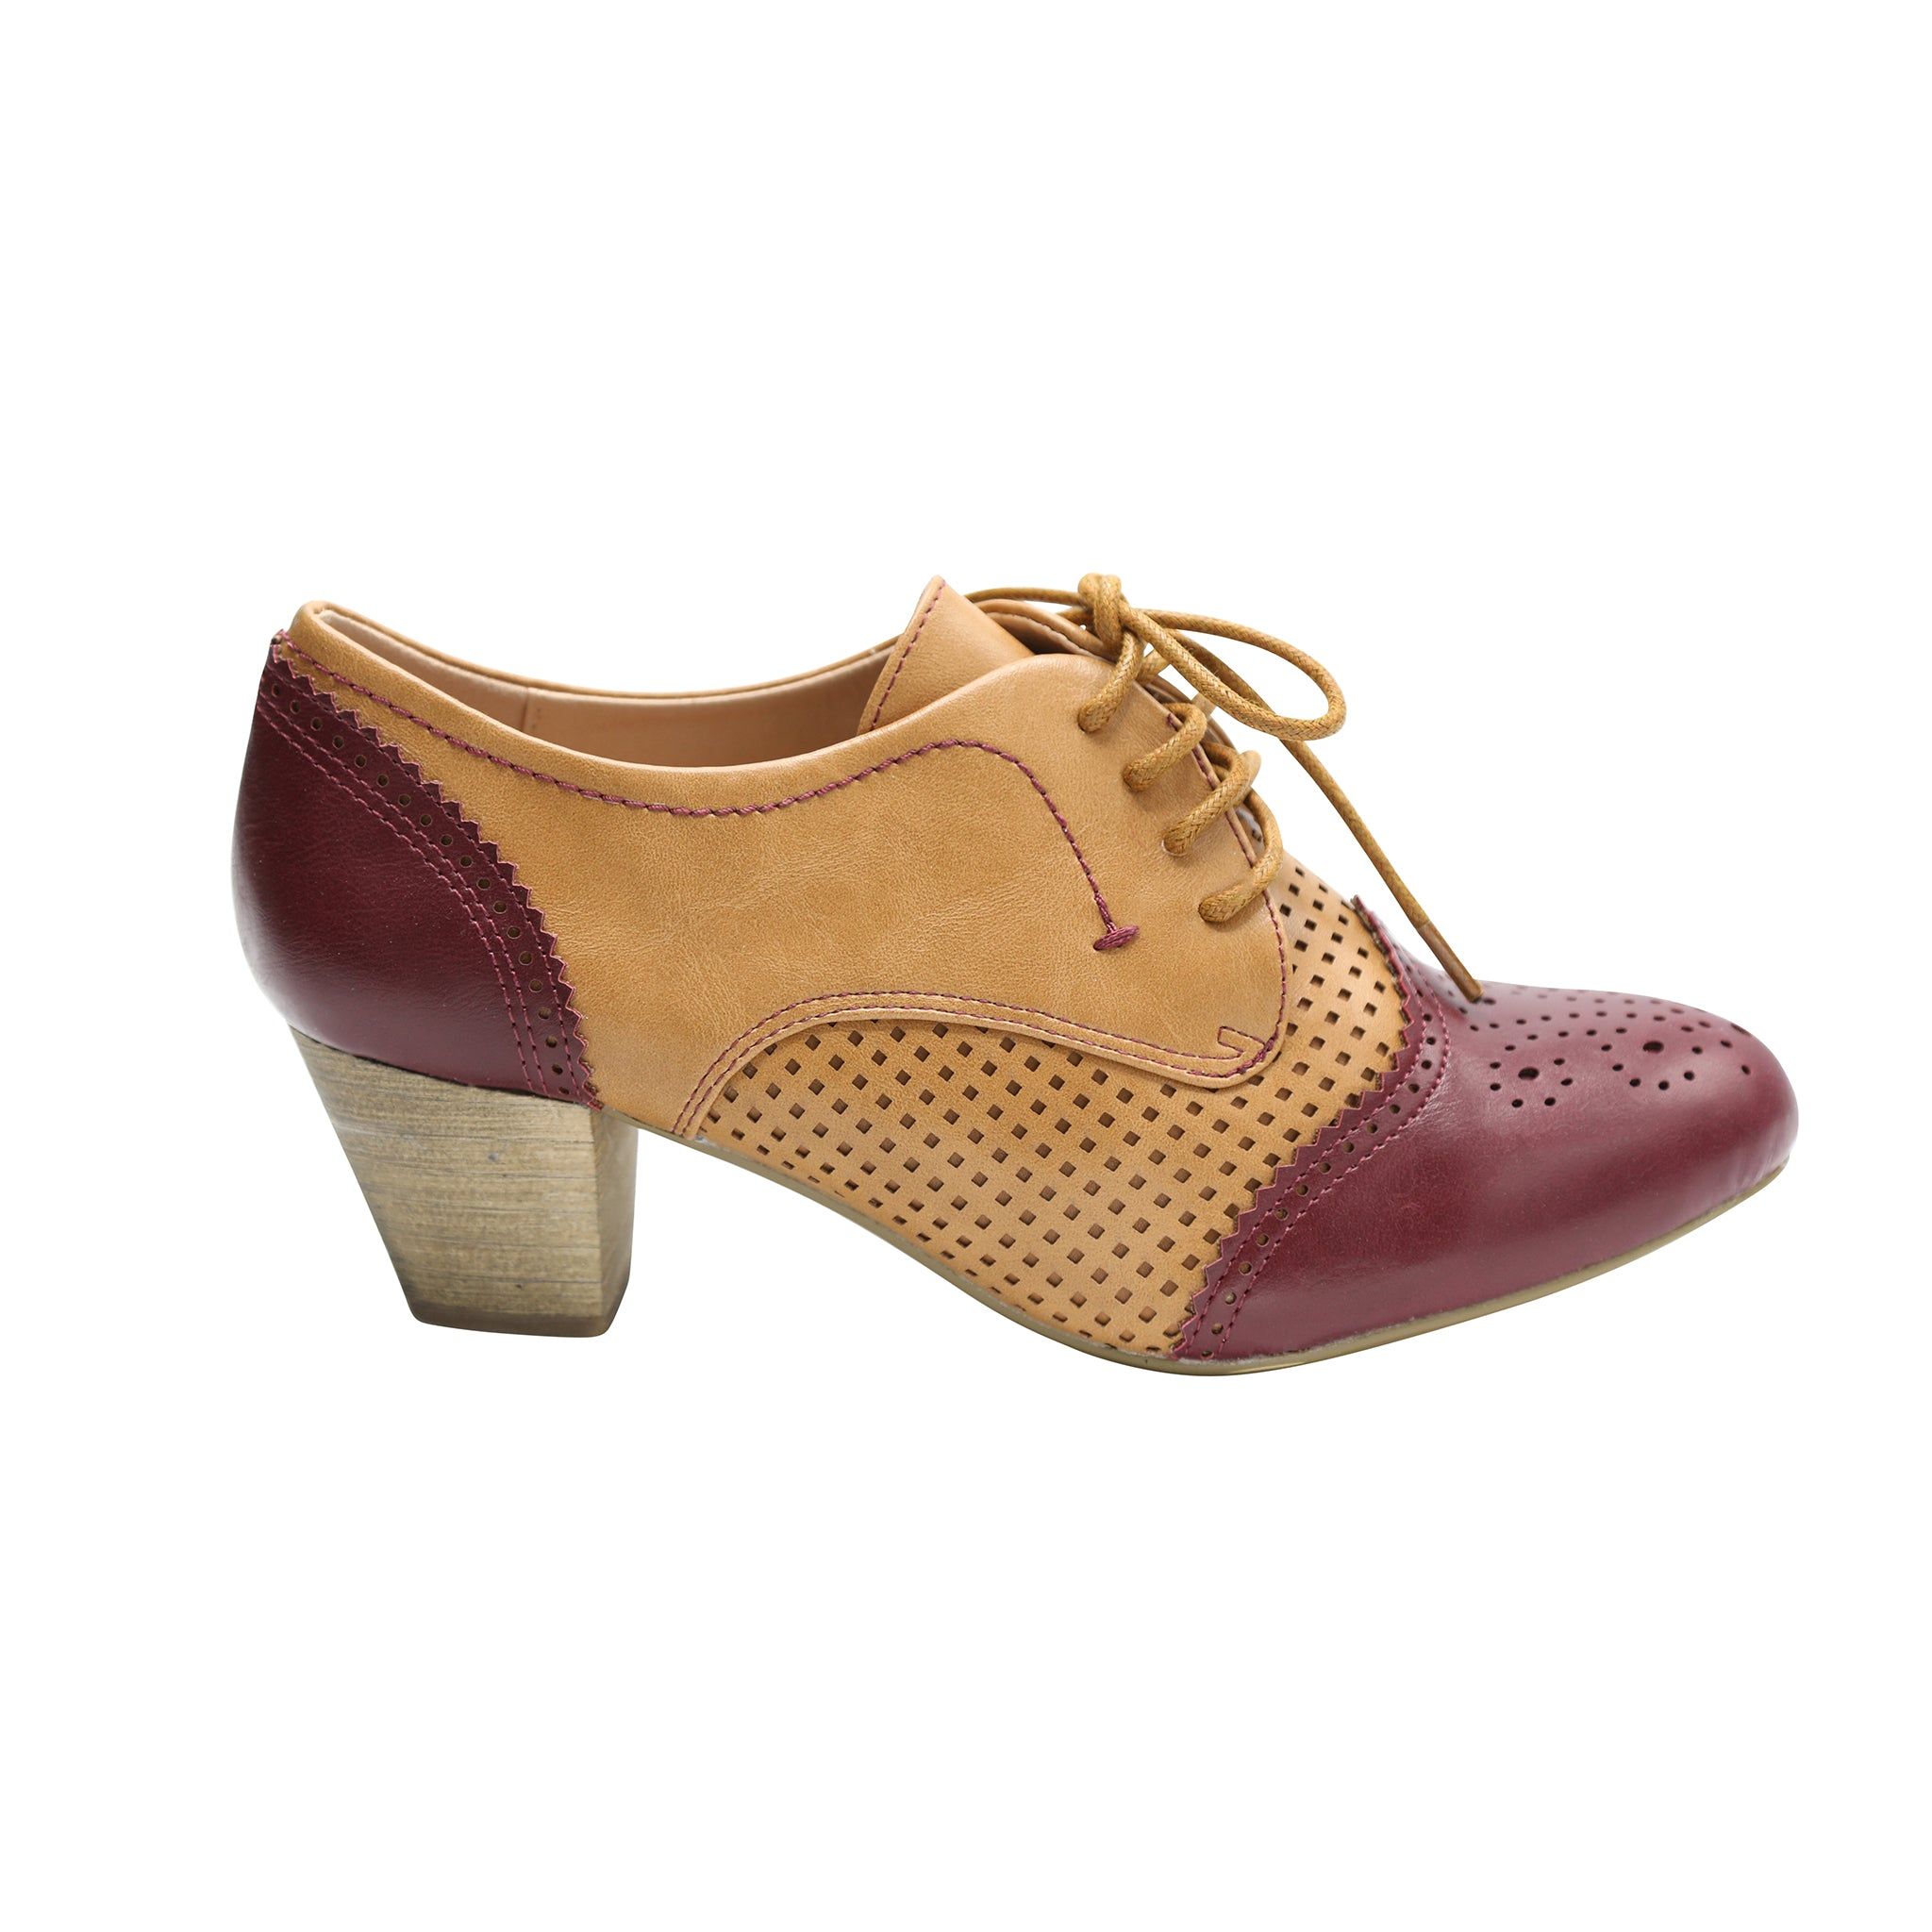 Selma by Dolce Nome | Two-Tone Oxford Pumps in Burgundy/Nude (side view)